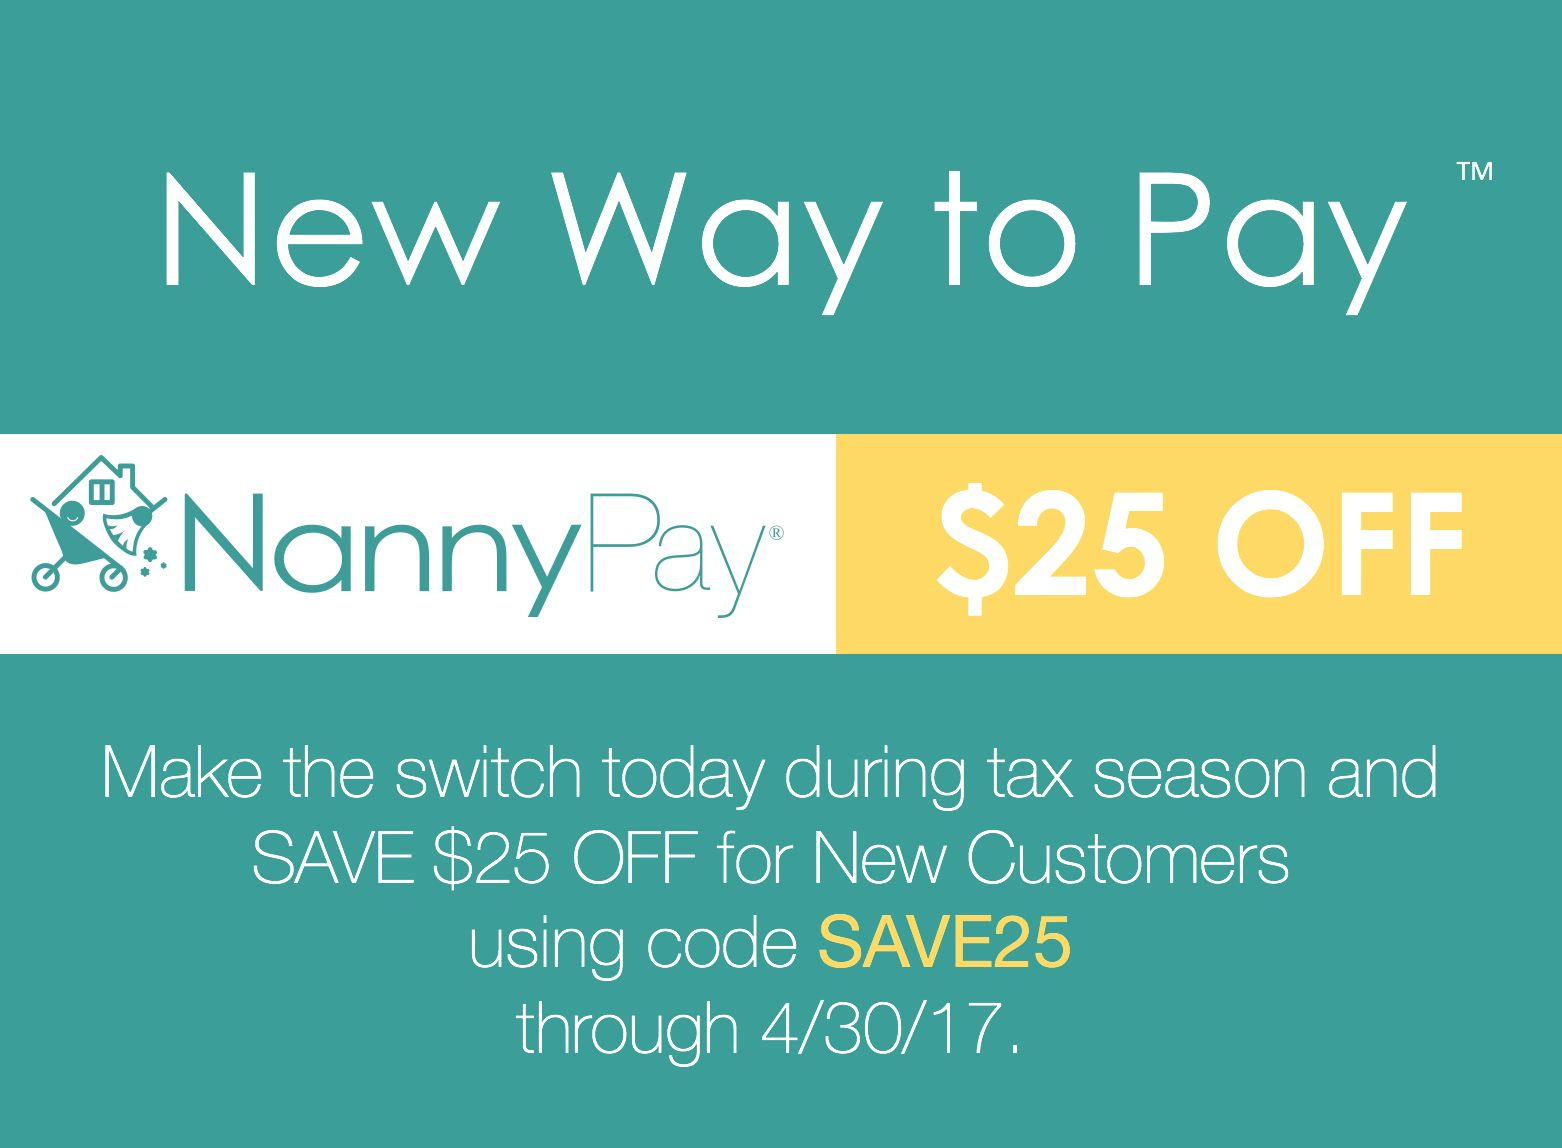 It's tax season and we want you to make the switch to NannyPay! SAVE $25 now through 4/30/17 for NEW customers. Not valid for renewals.